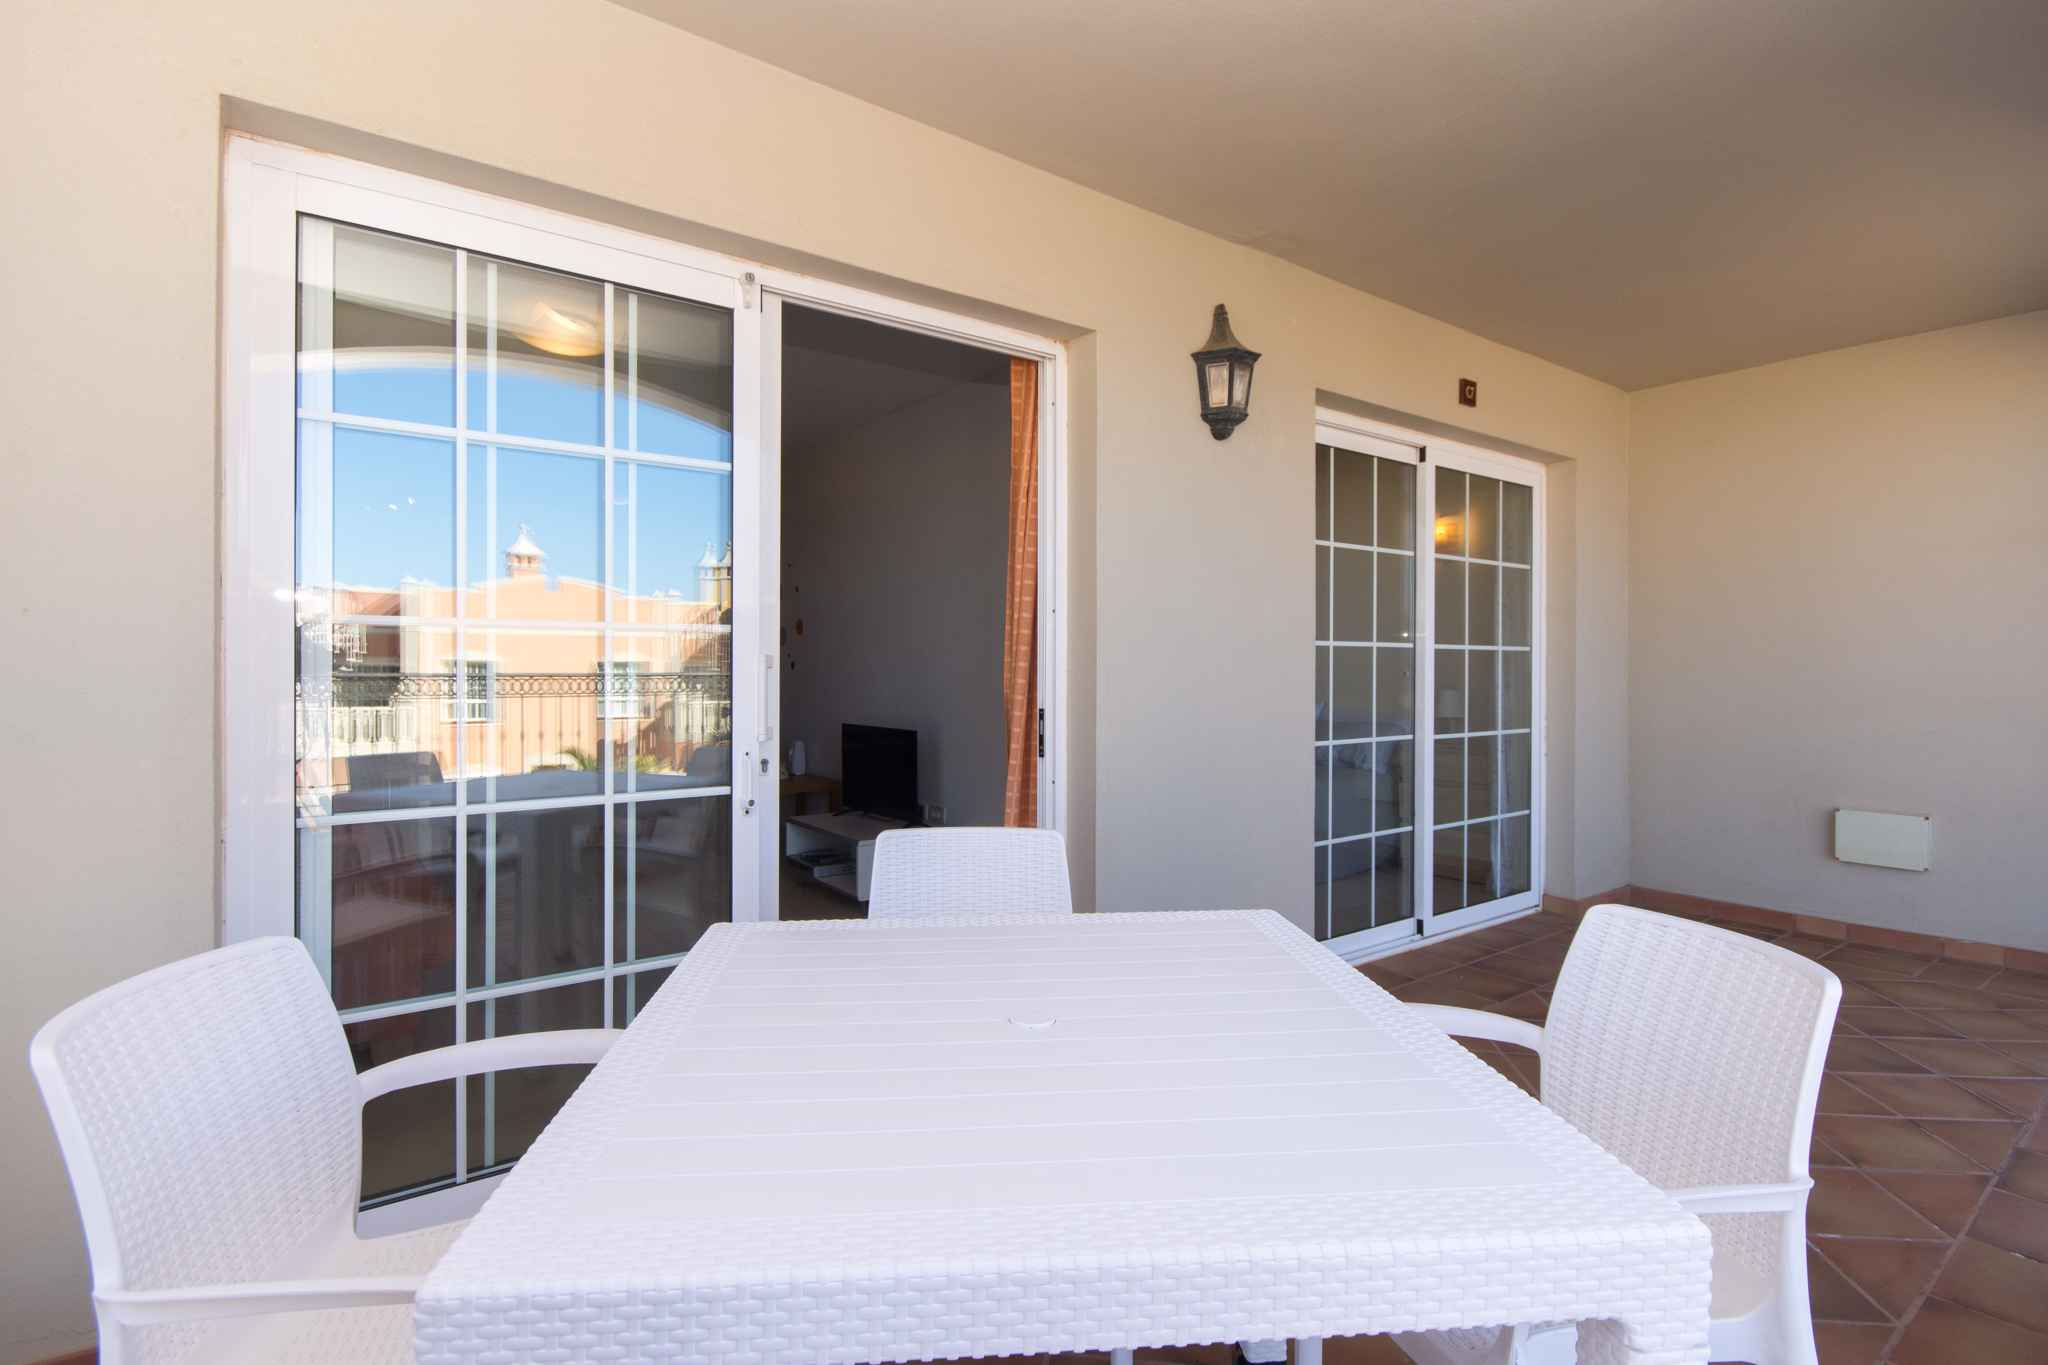 Holiday apartment mit Pool in Ferienanlage (2377552), Palm-Mar, Tenerife, Canary Islands, Spain, picture 4